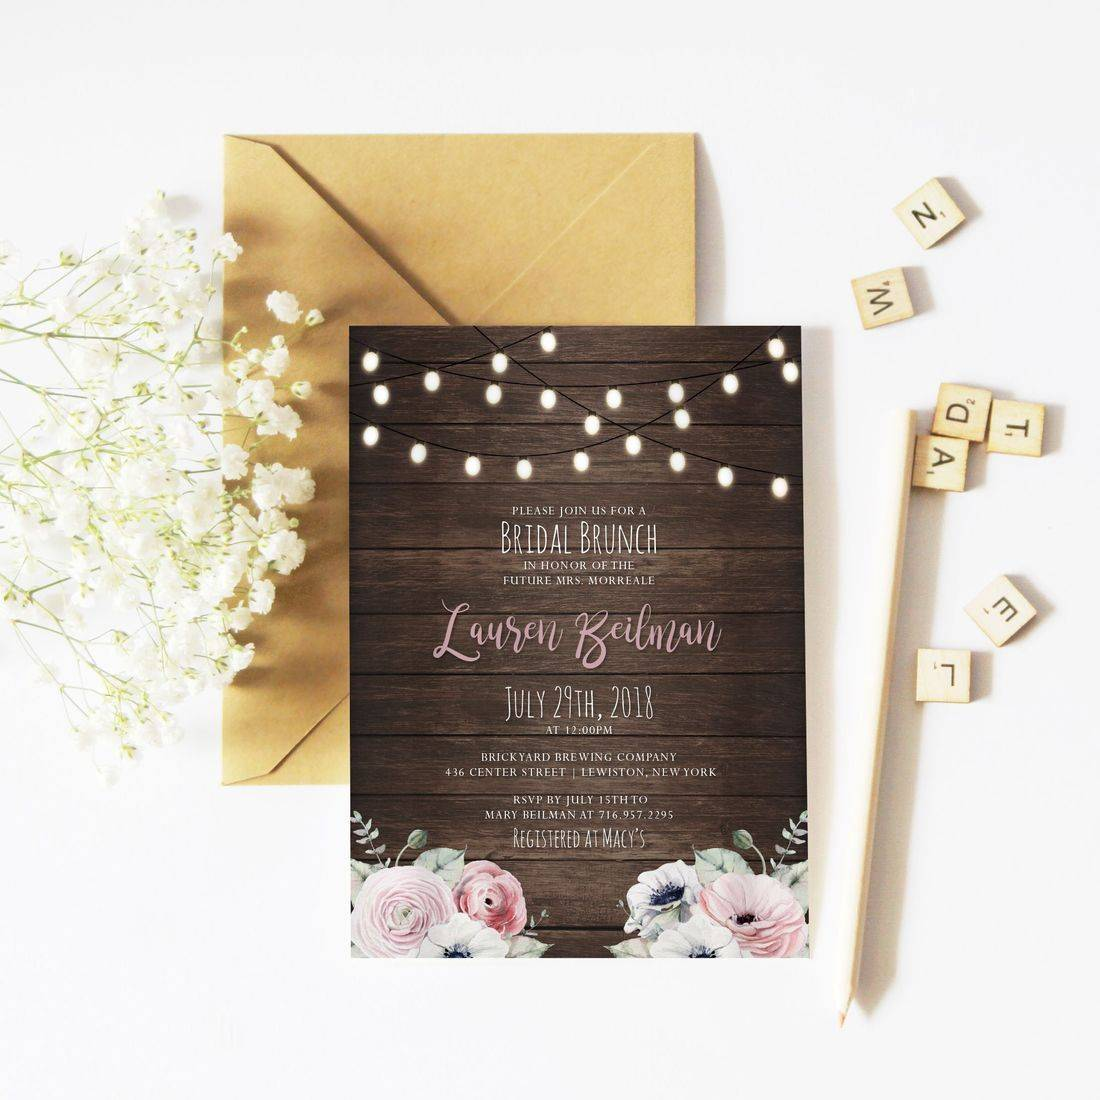 Rustic bridal shower invitation flat lay with string lights and flowers